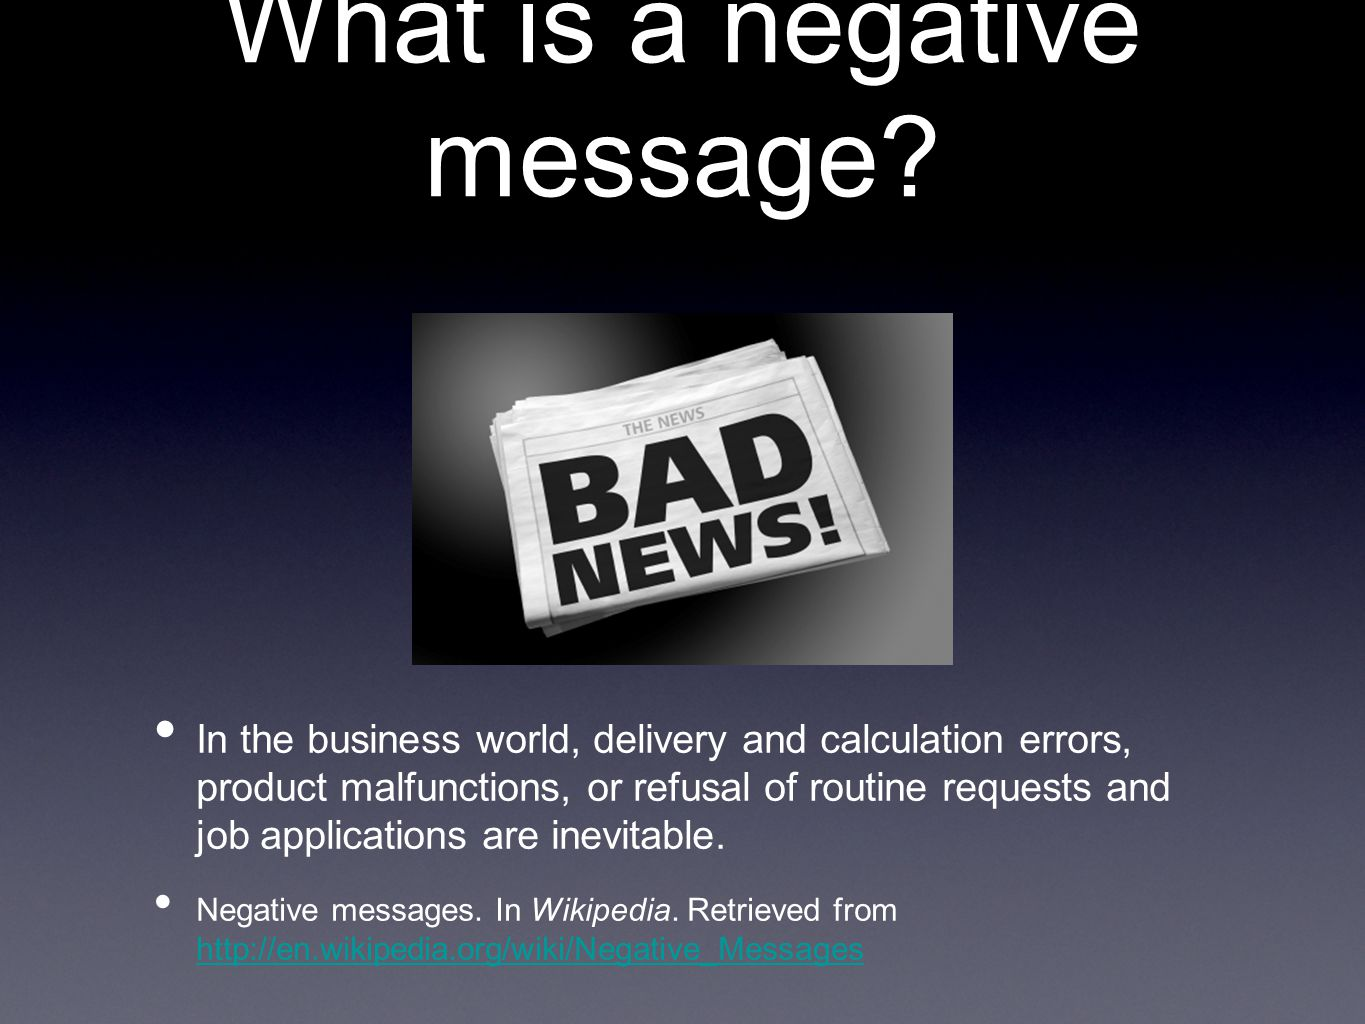 What is a negative message? In the business world, delivery and calculation errors, product malfunctions, or refusal of routine requests and job appli